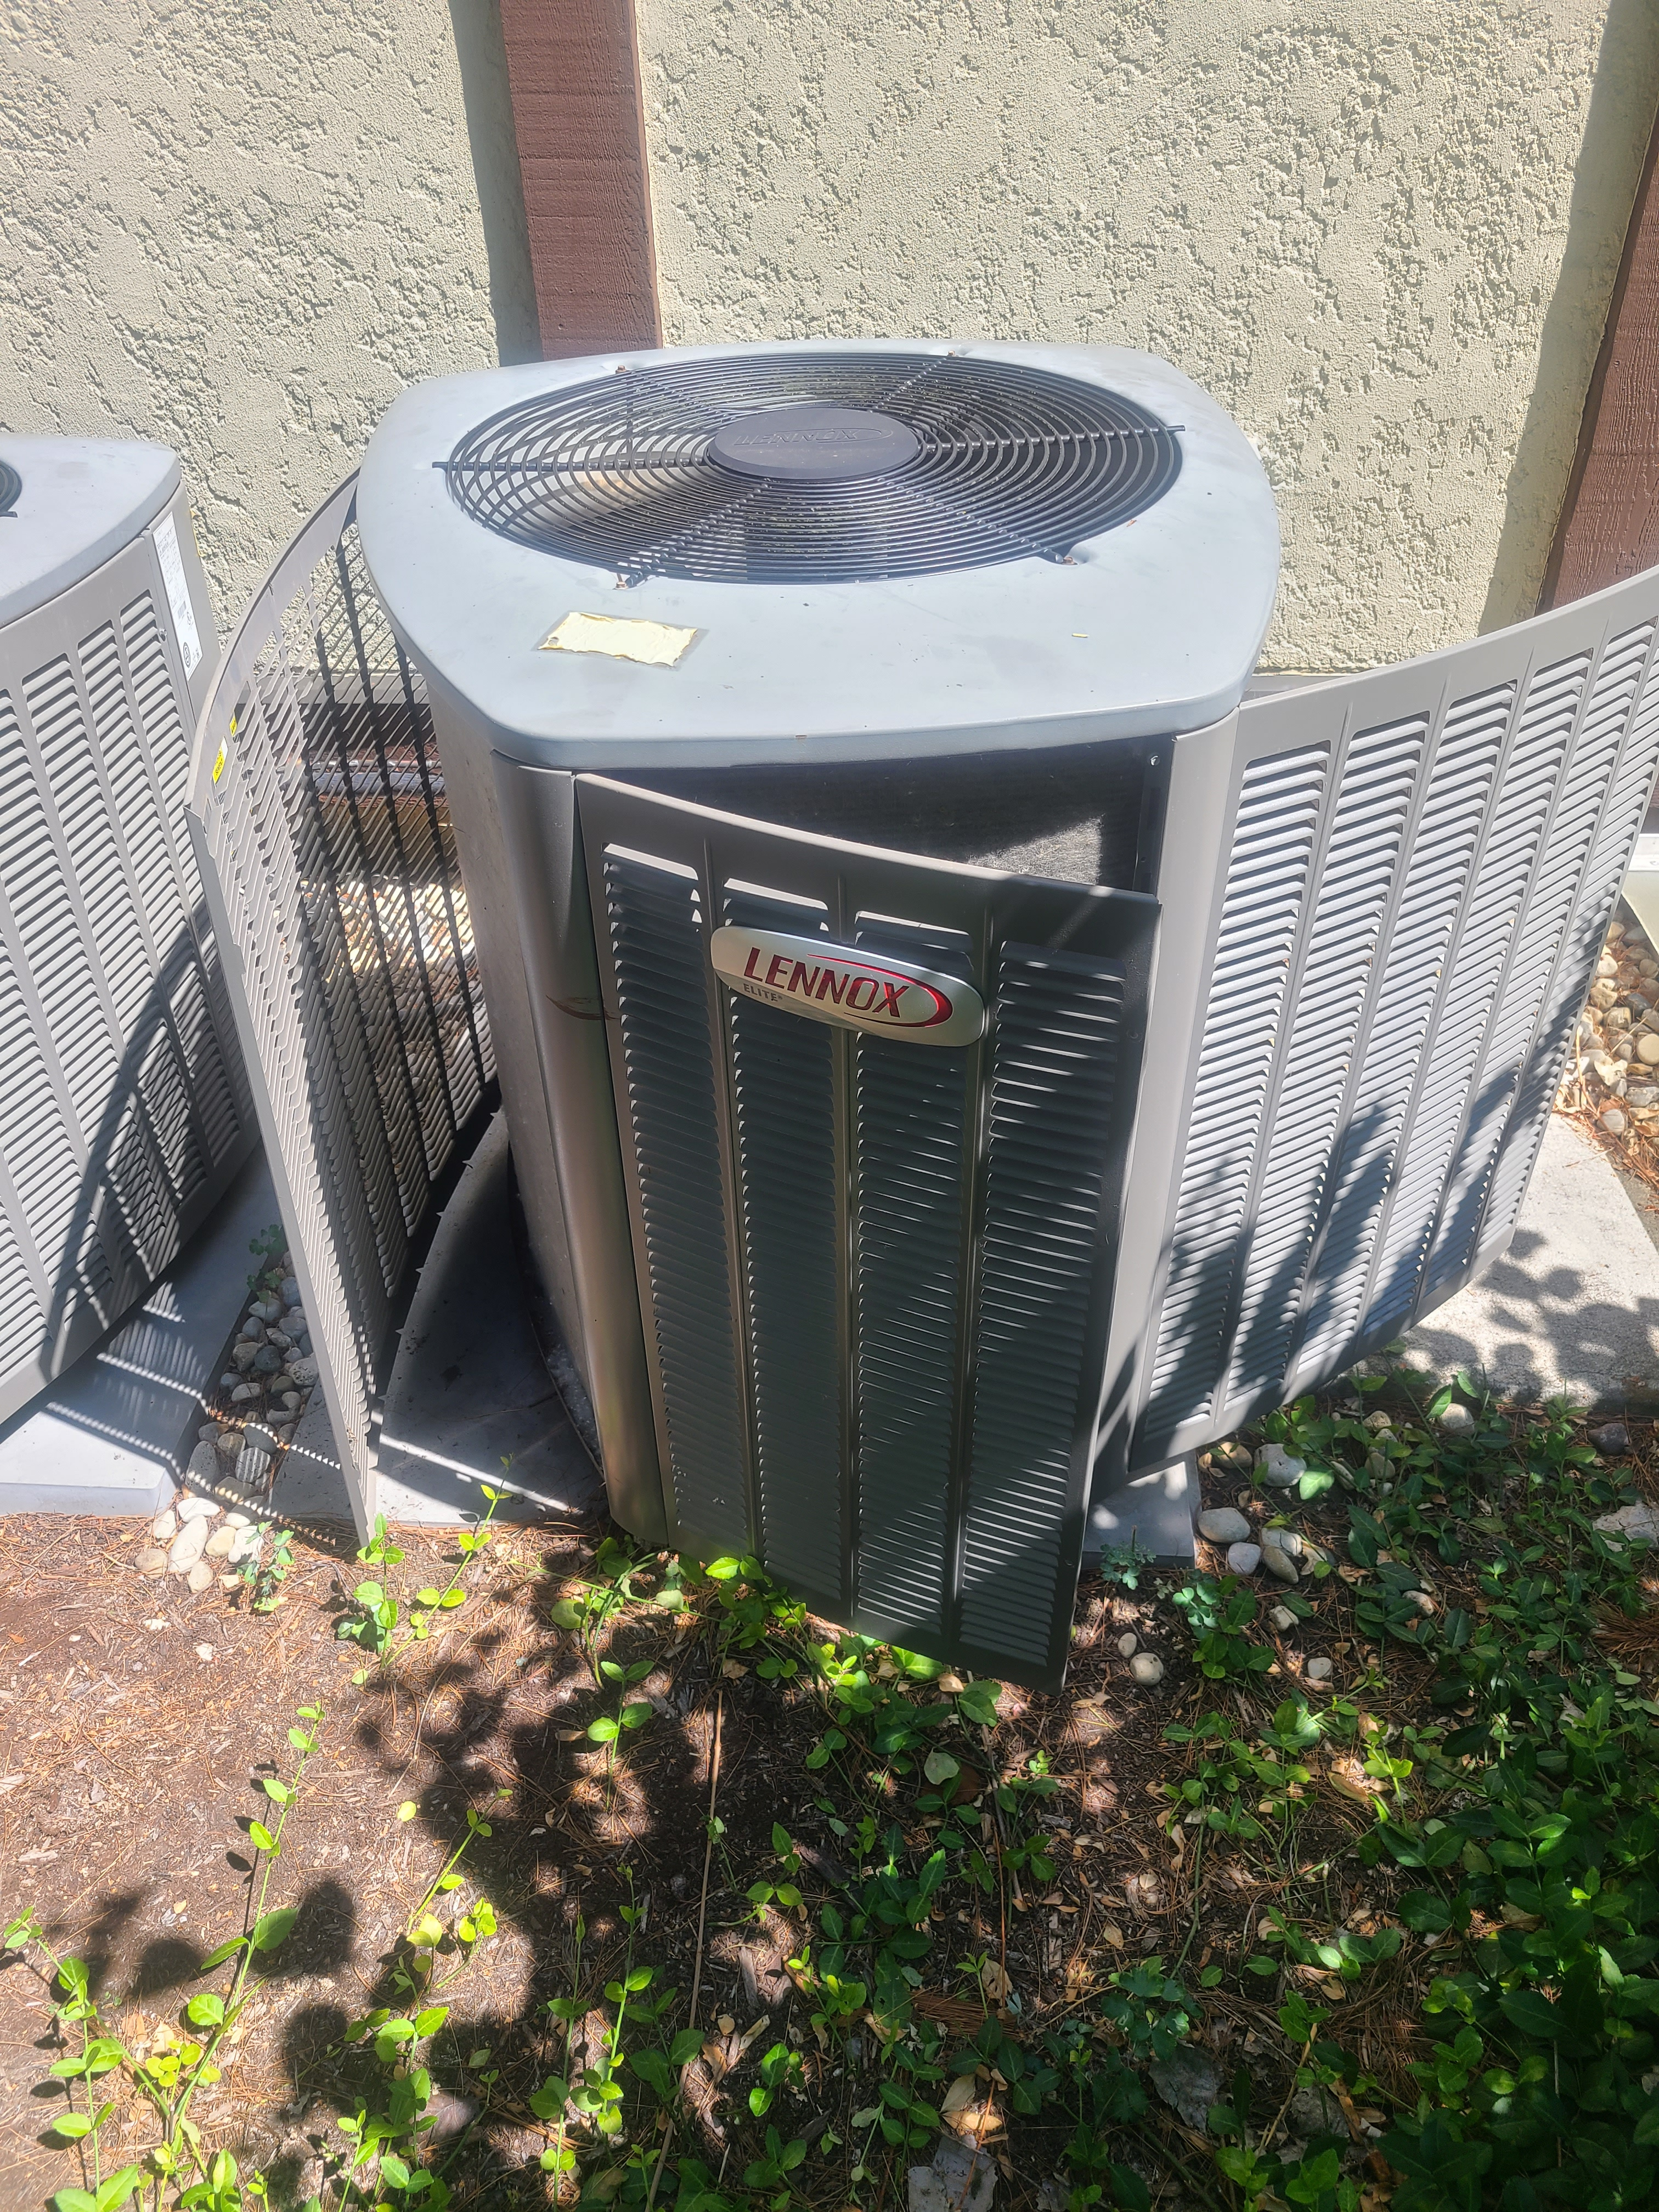 Cleaning condenser coil on a Lennox air conditioner.